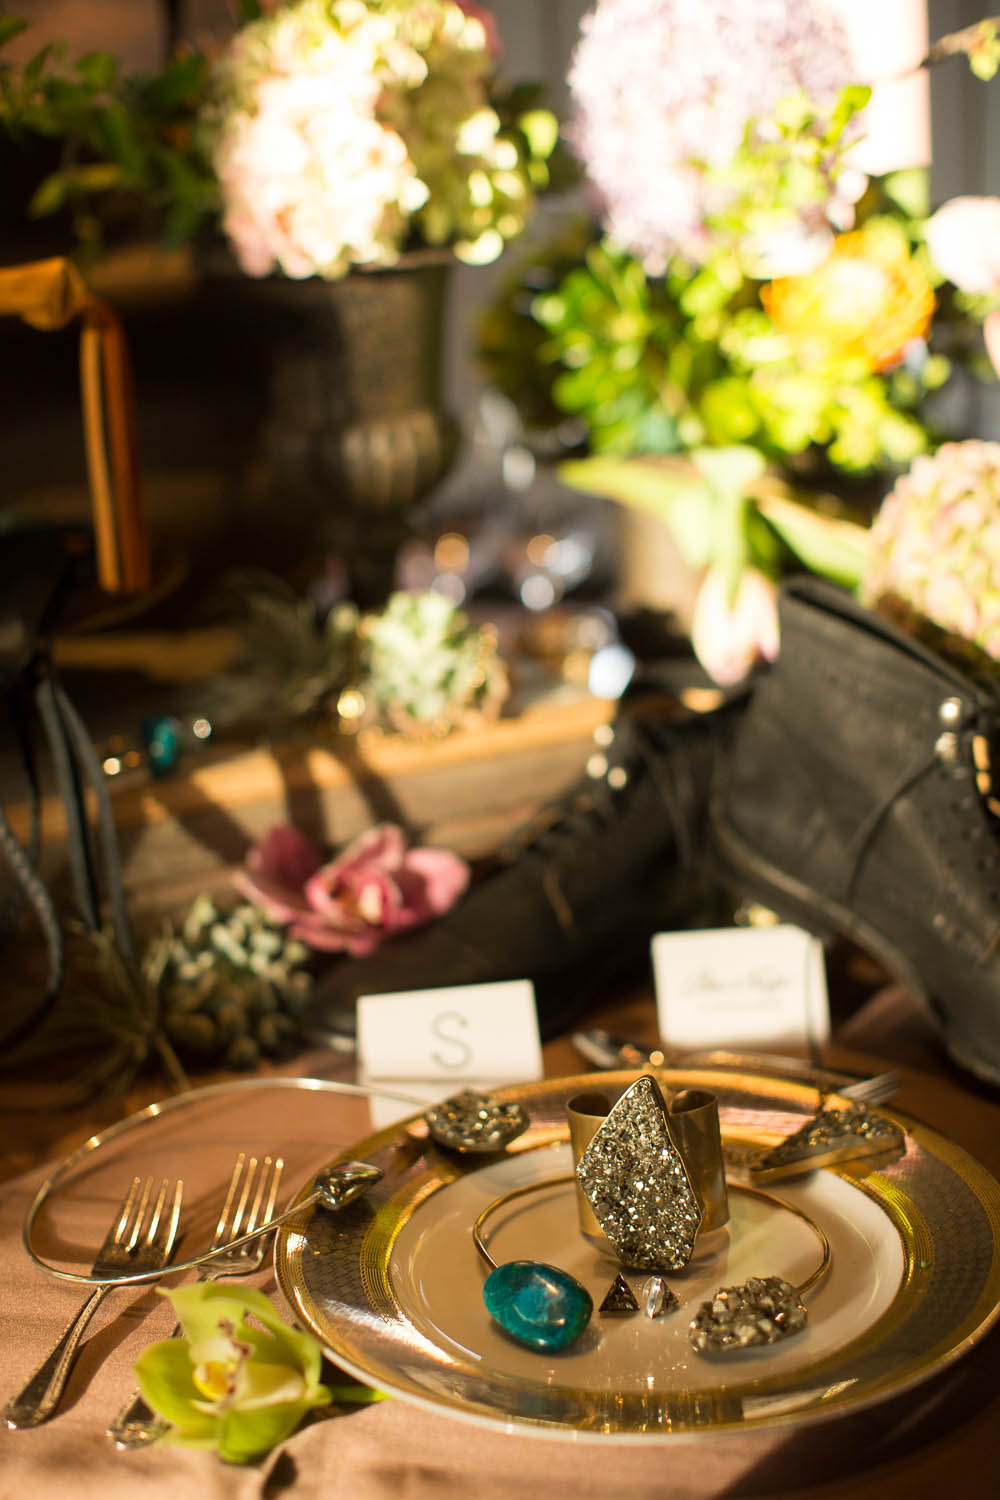 WEB_cordelle_accessories_as_art_nashville_fashion_photographer_©2015abigailbobophotography-46.jpg